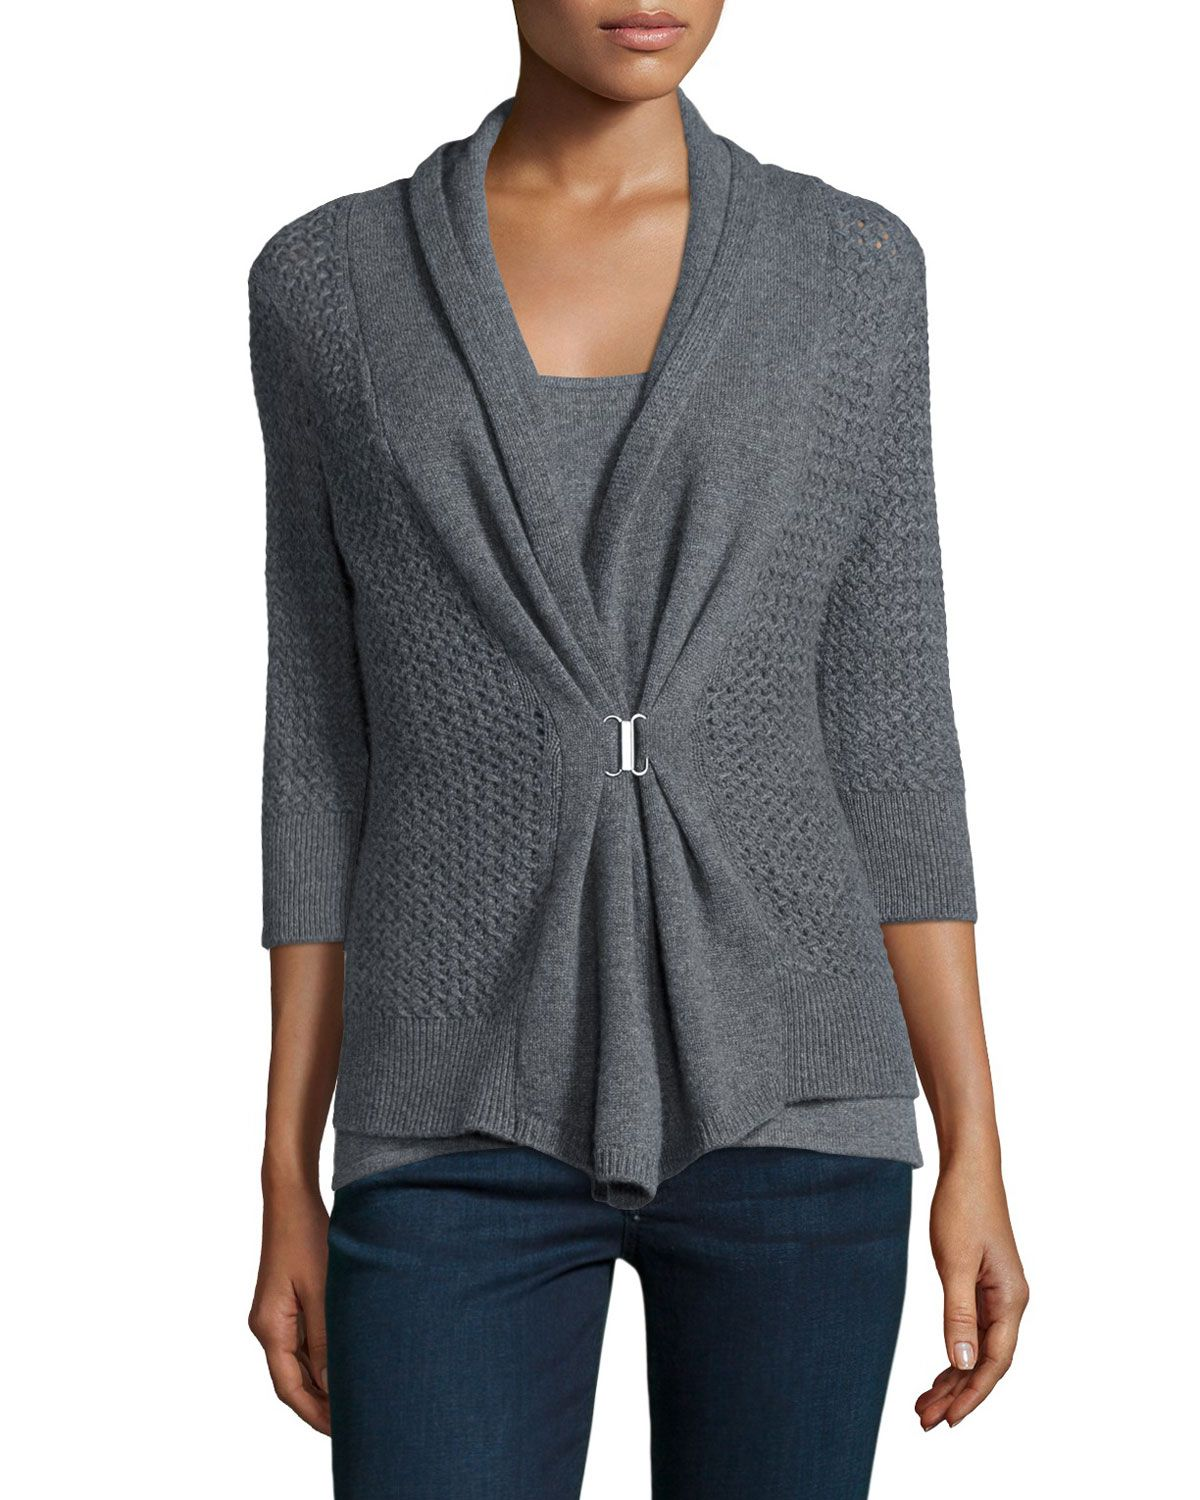 Ruched-Sleeve High-Low Cardigan Neiman Marcus 2018 Cool Cheap Sale Cheap EyjsdWr5